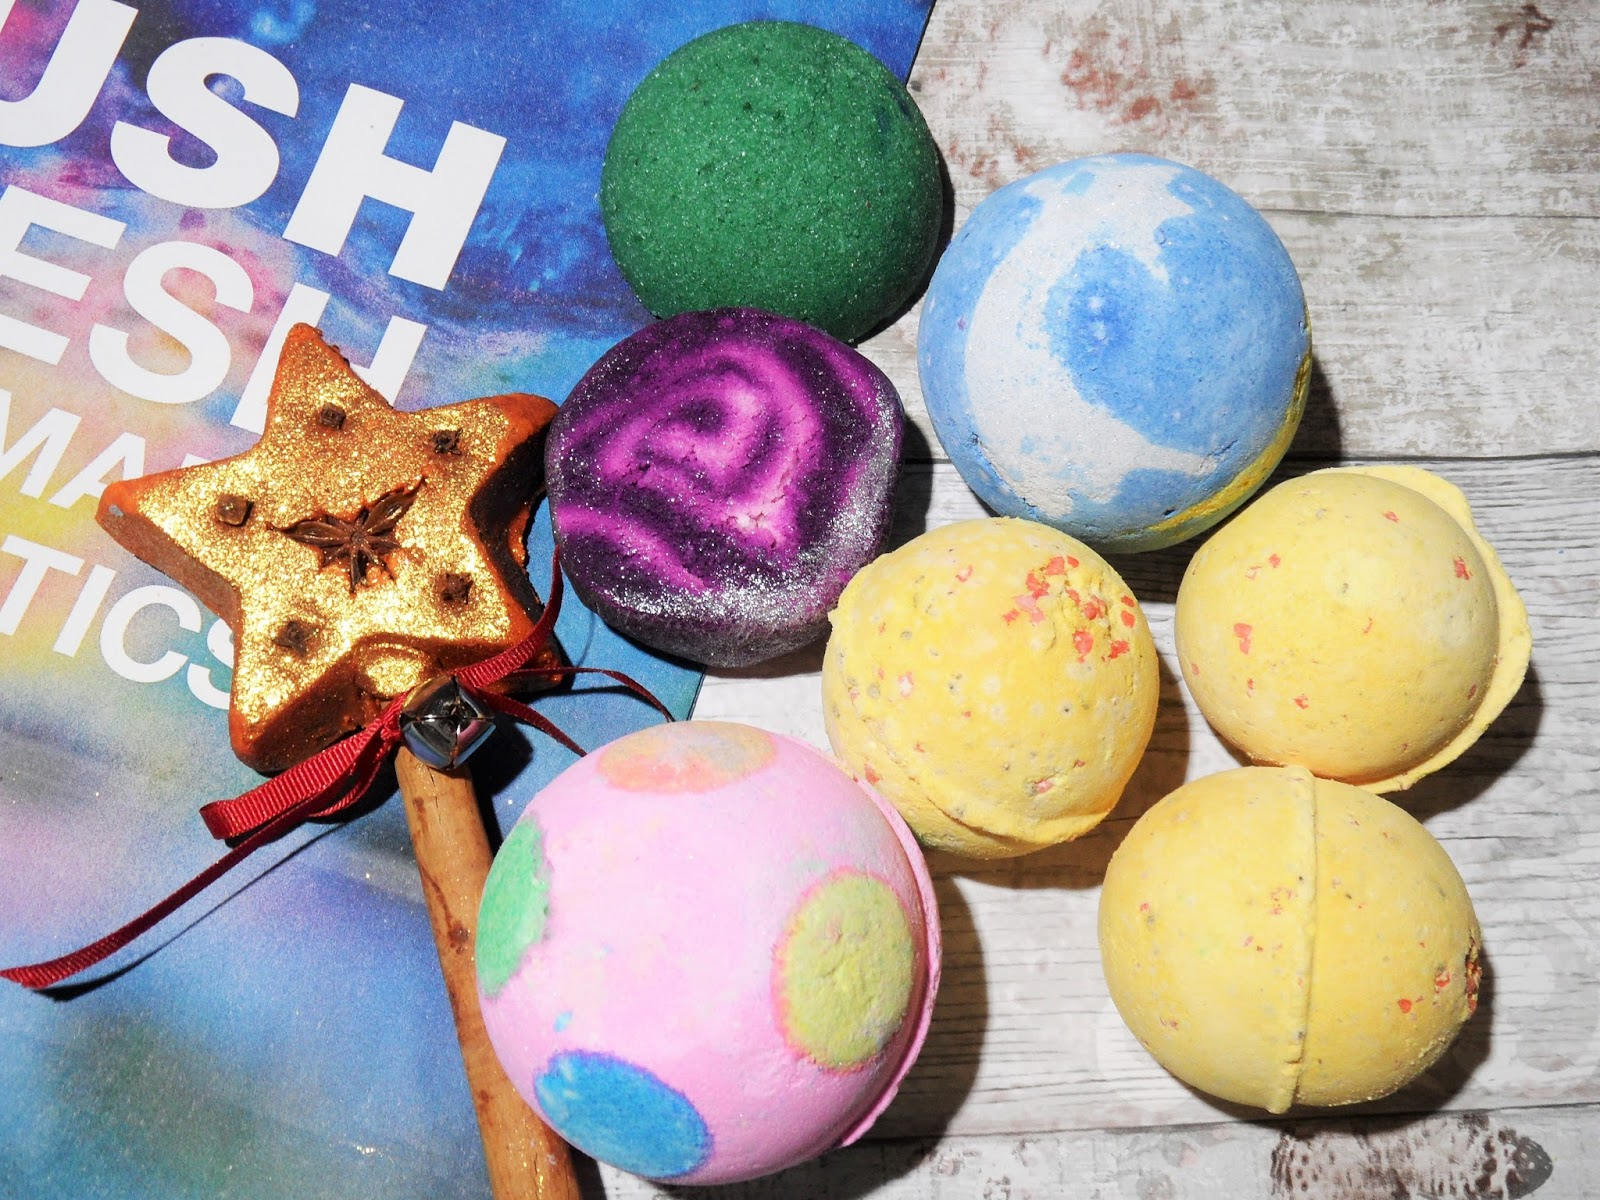 Christmas 2015 LUSH Sale Haul